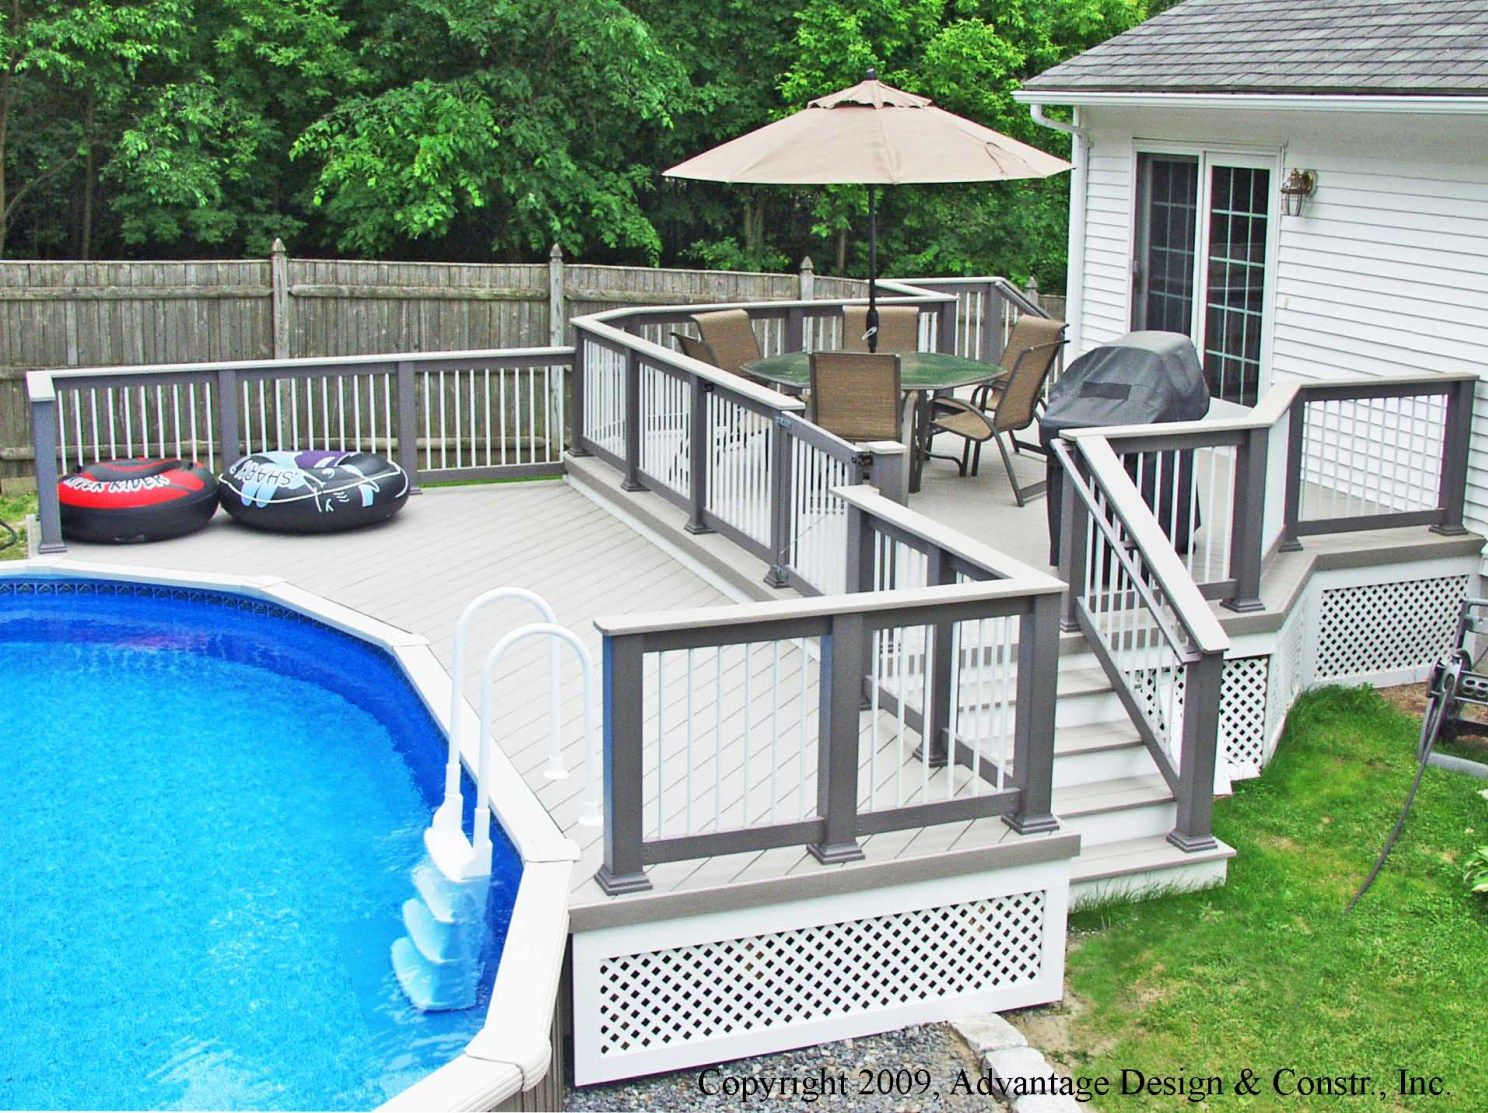 backyard deck design. Oval Pool Deck Designs Backyard Design